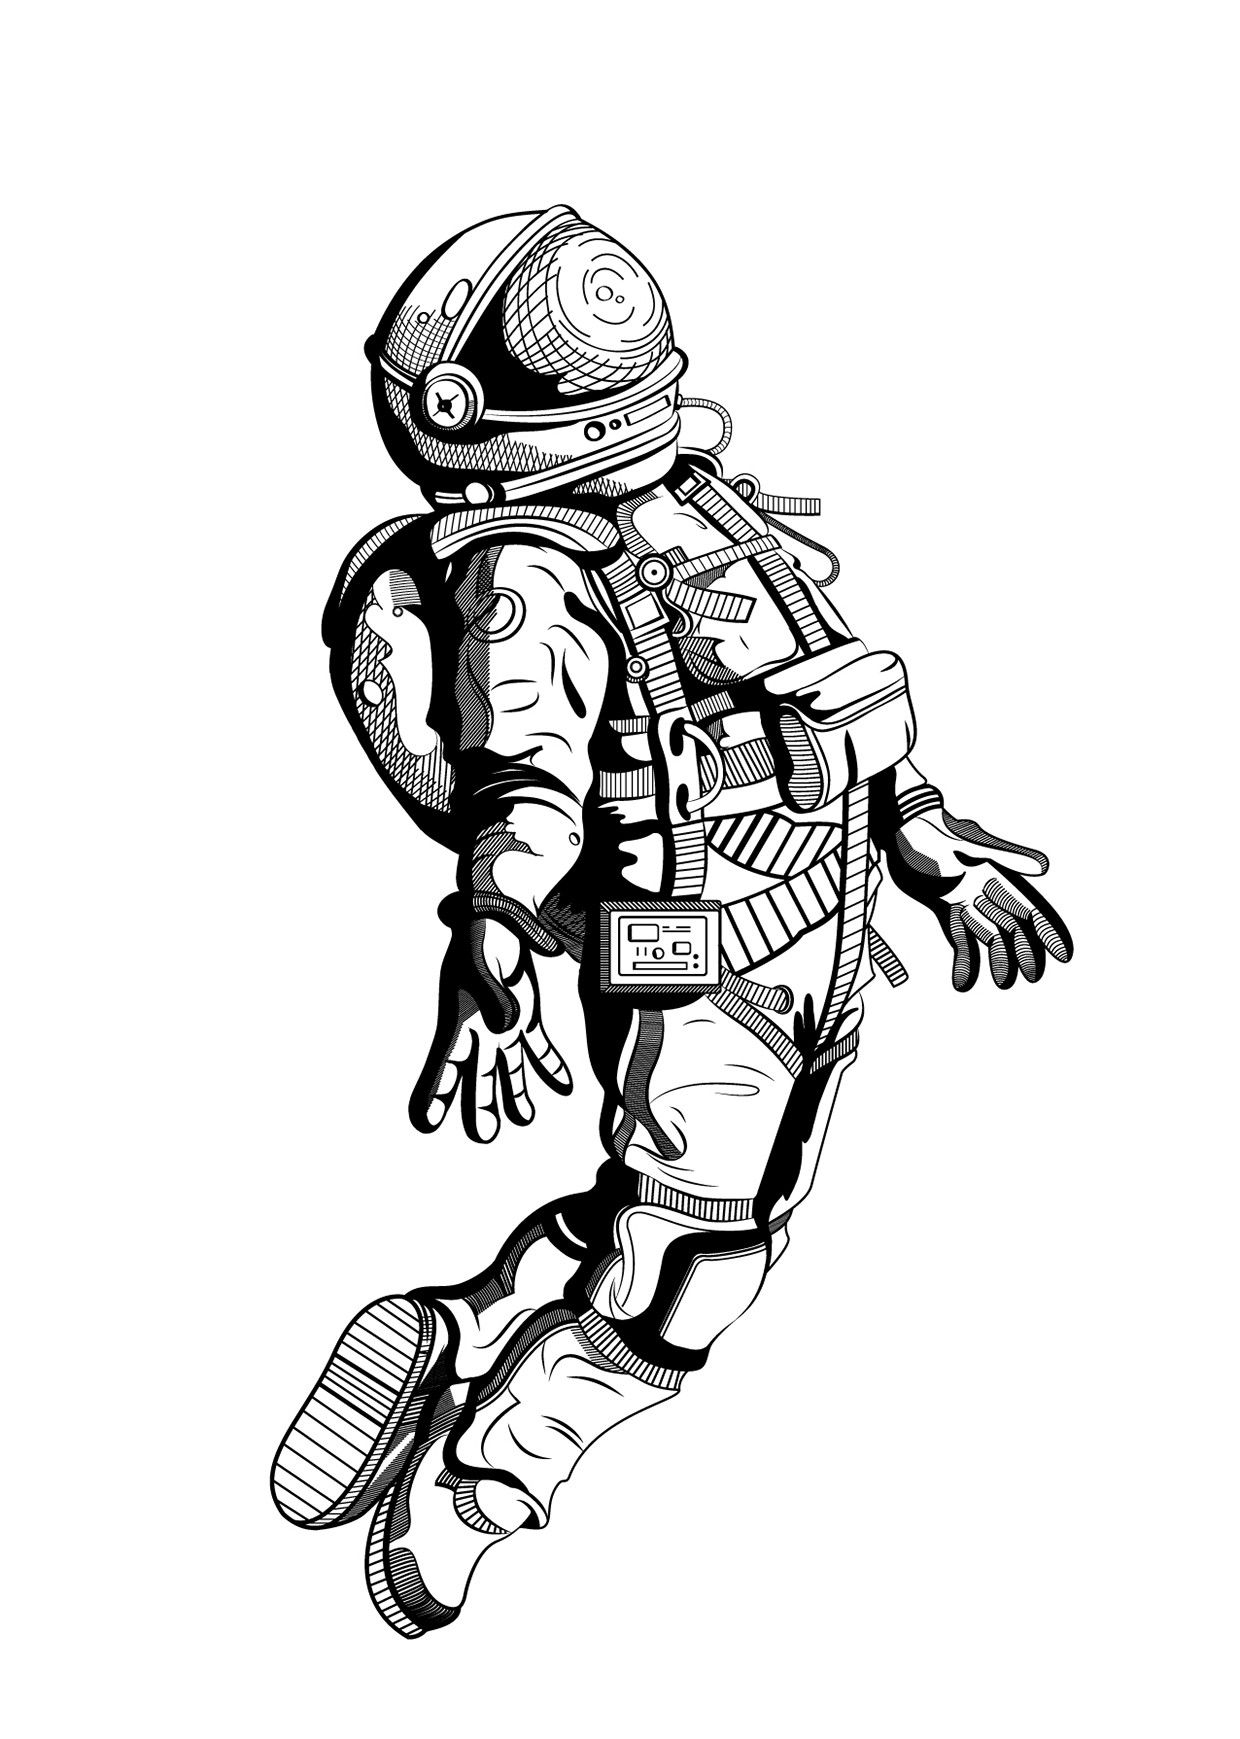 how to draw an astronaut an astronaut wearing a damage spacesuit coloring page draw how astronaut to an